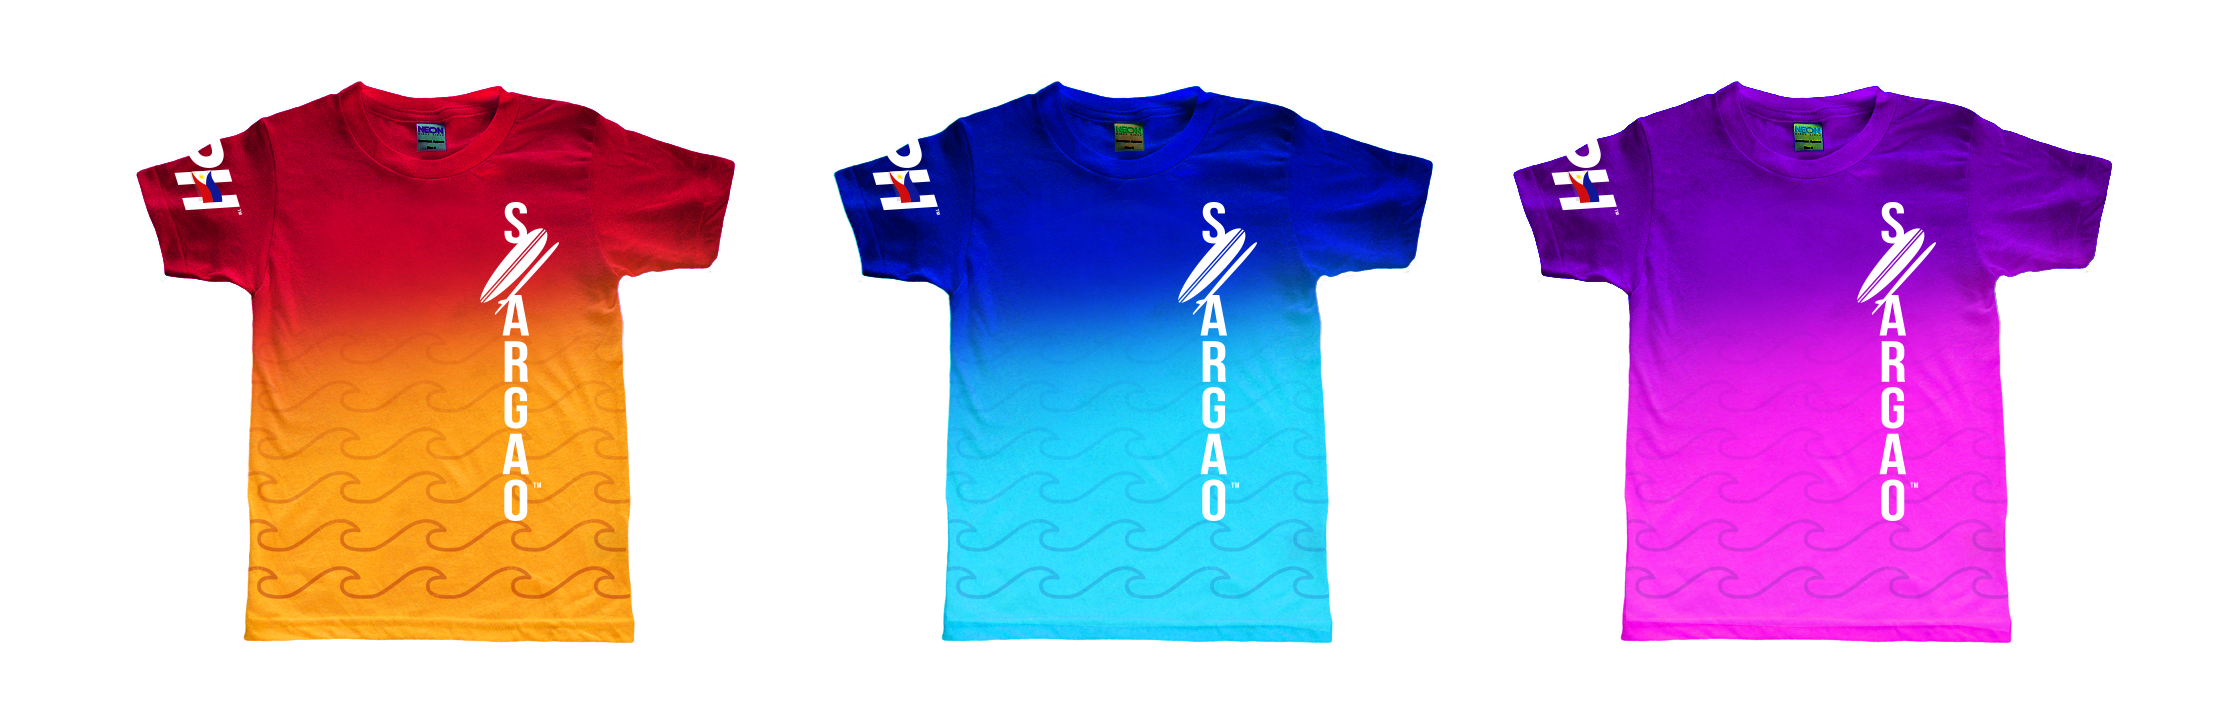 370c07cf SIARGAO by PH Island Lifestyle || #brand #design #placebranding #culture # local #tee #shirt #siargao #surf #philippines